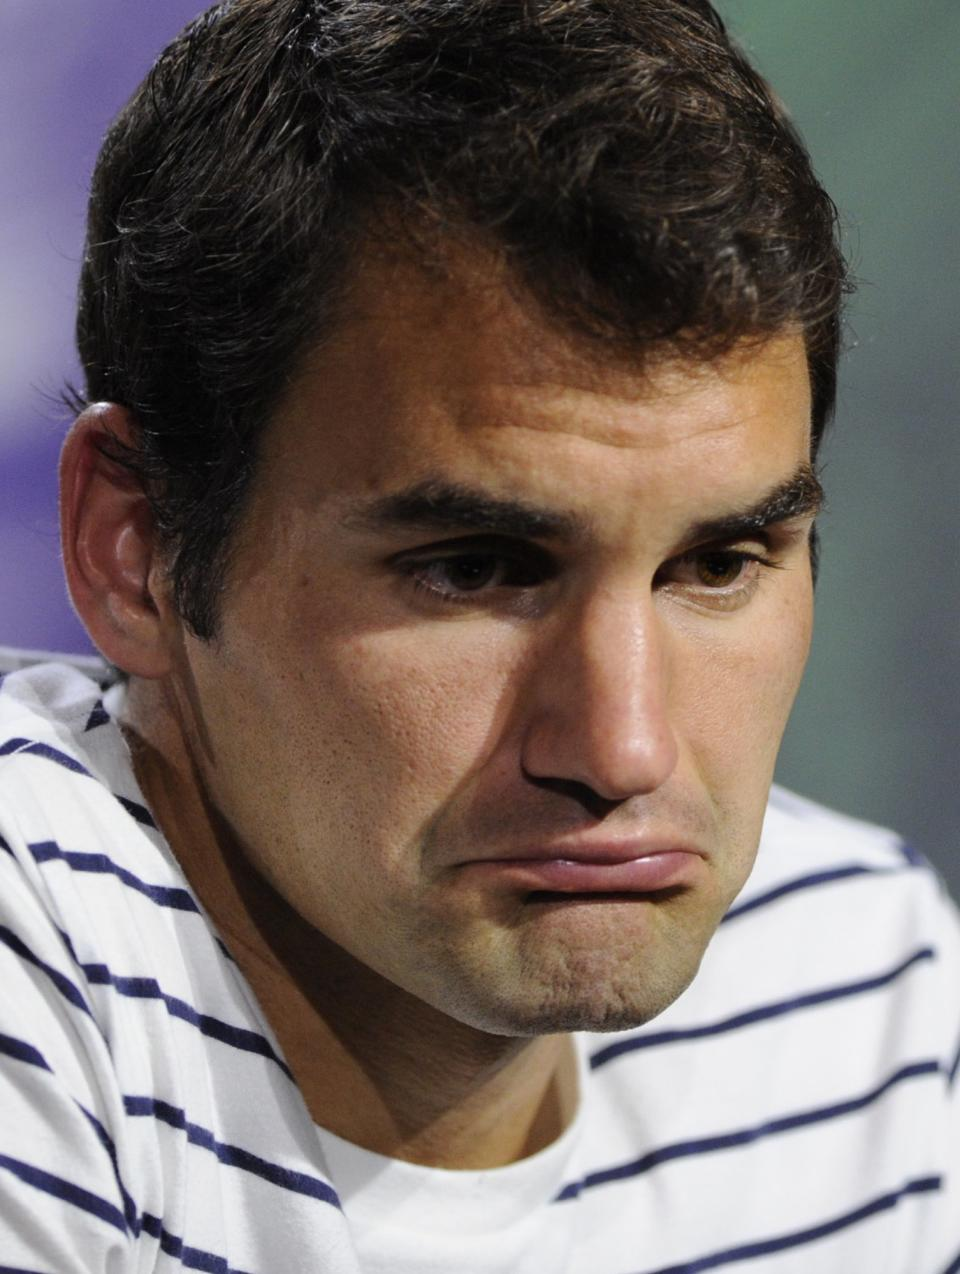 Roger Federer of Switzerland grimaces during a press conference after his defeat to Sergiy Stakhovsky of Ukraine in a Men's second round singles match at the All England Lawn Tennis Championships, Wimbledon, London, Wednesday, June 26, 2013. (AP Photo/AELTC, Thomas Lovelock)